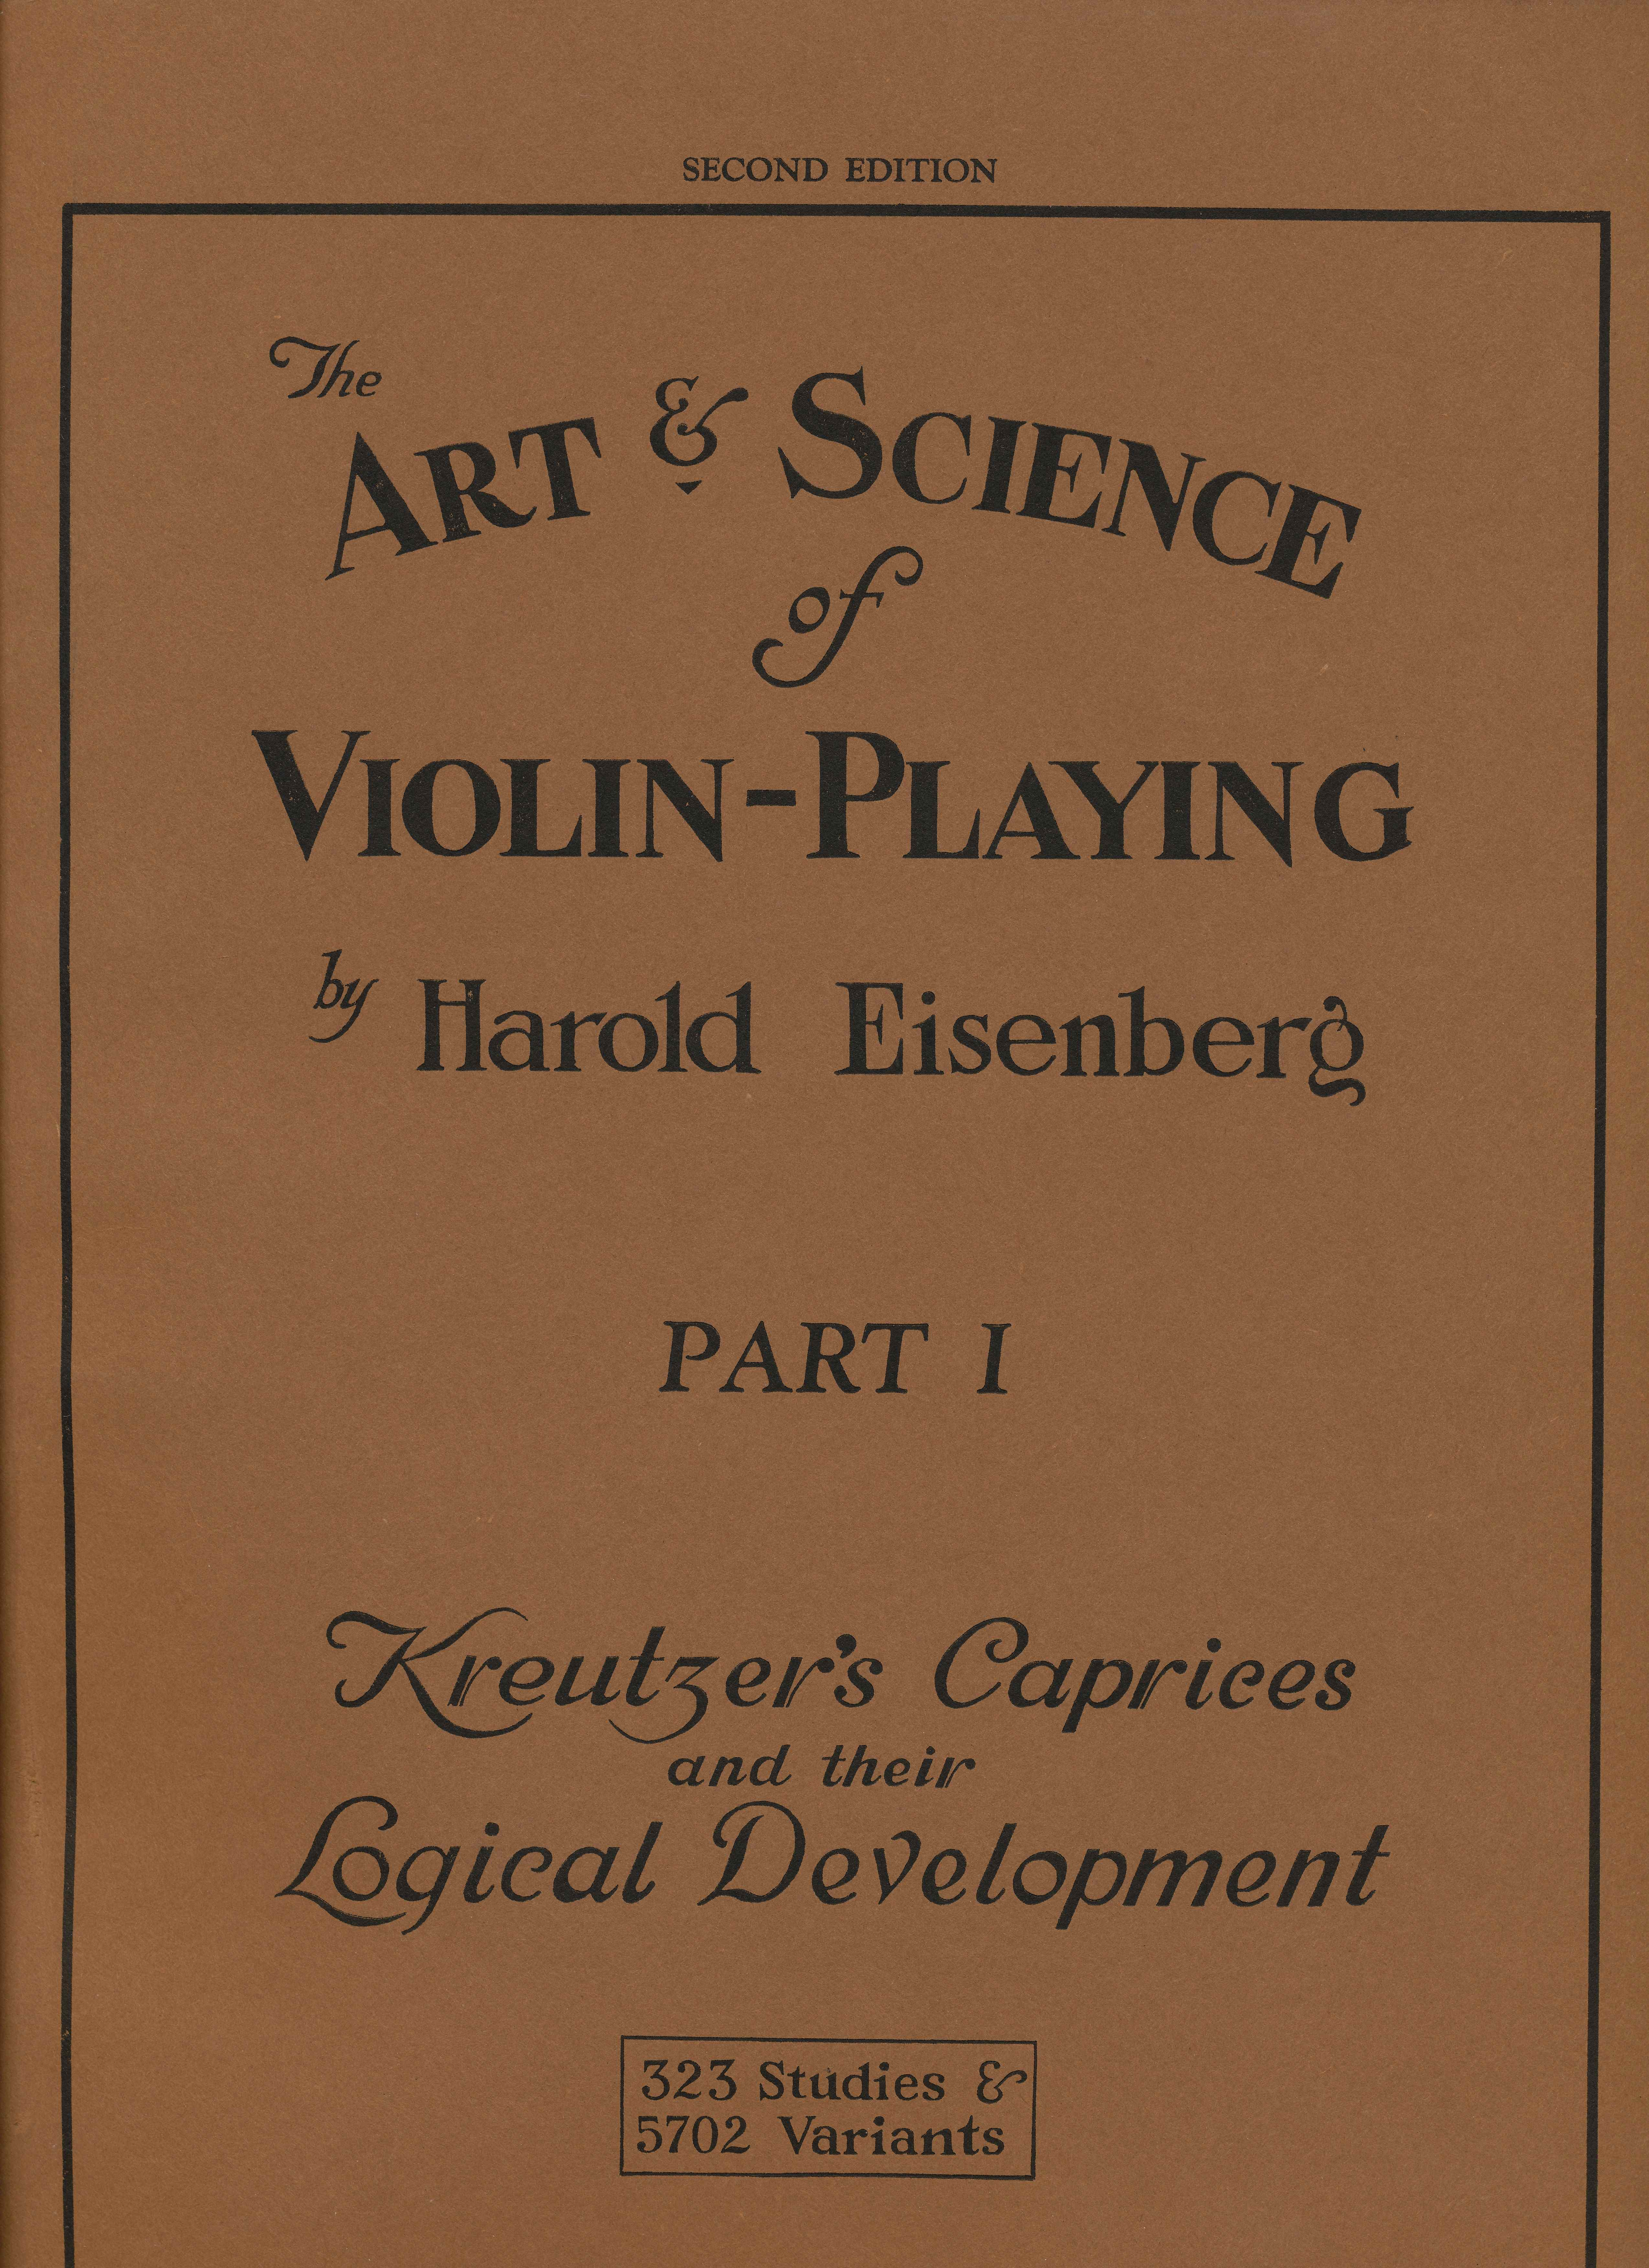 The Art & Science of Violin Playing - Parts I & II Kreutzer's Ca